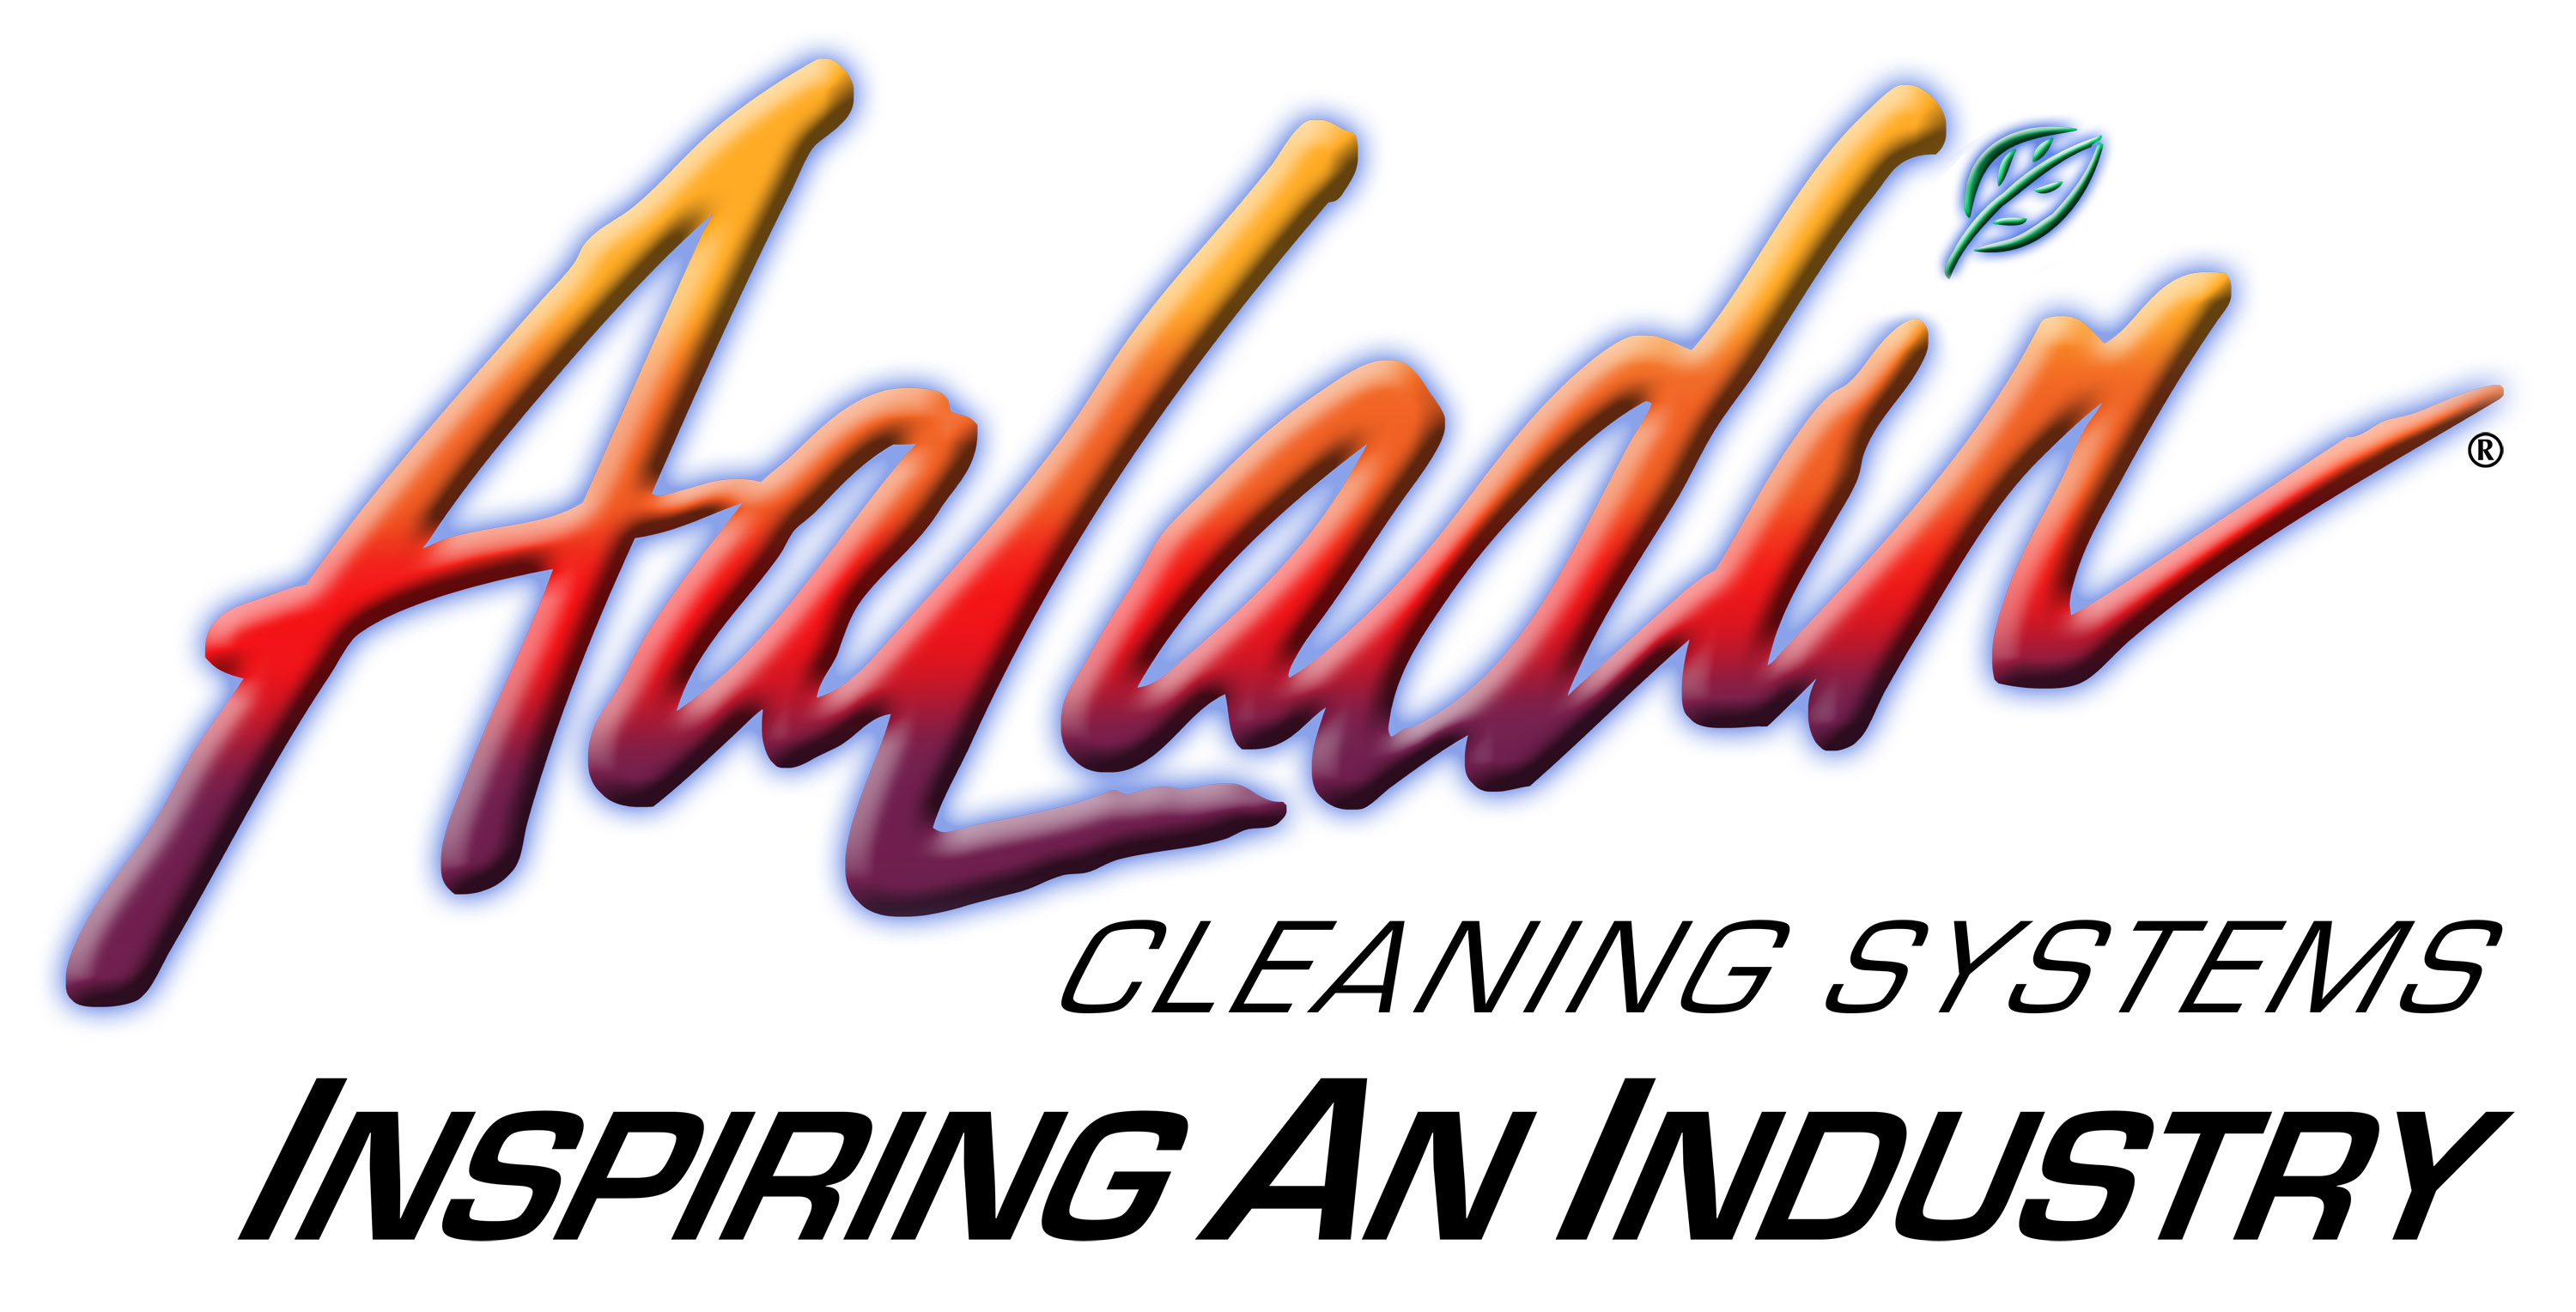 AaLadin Industries